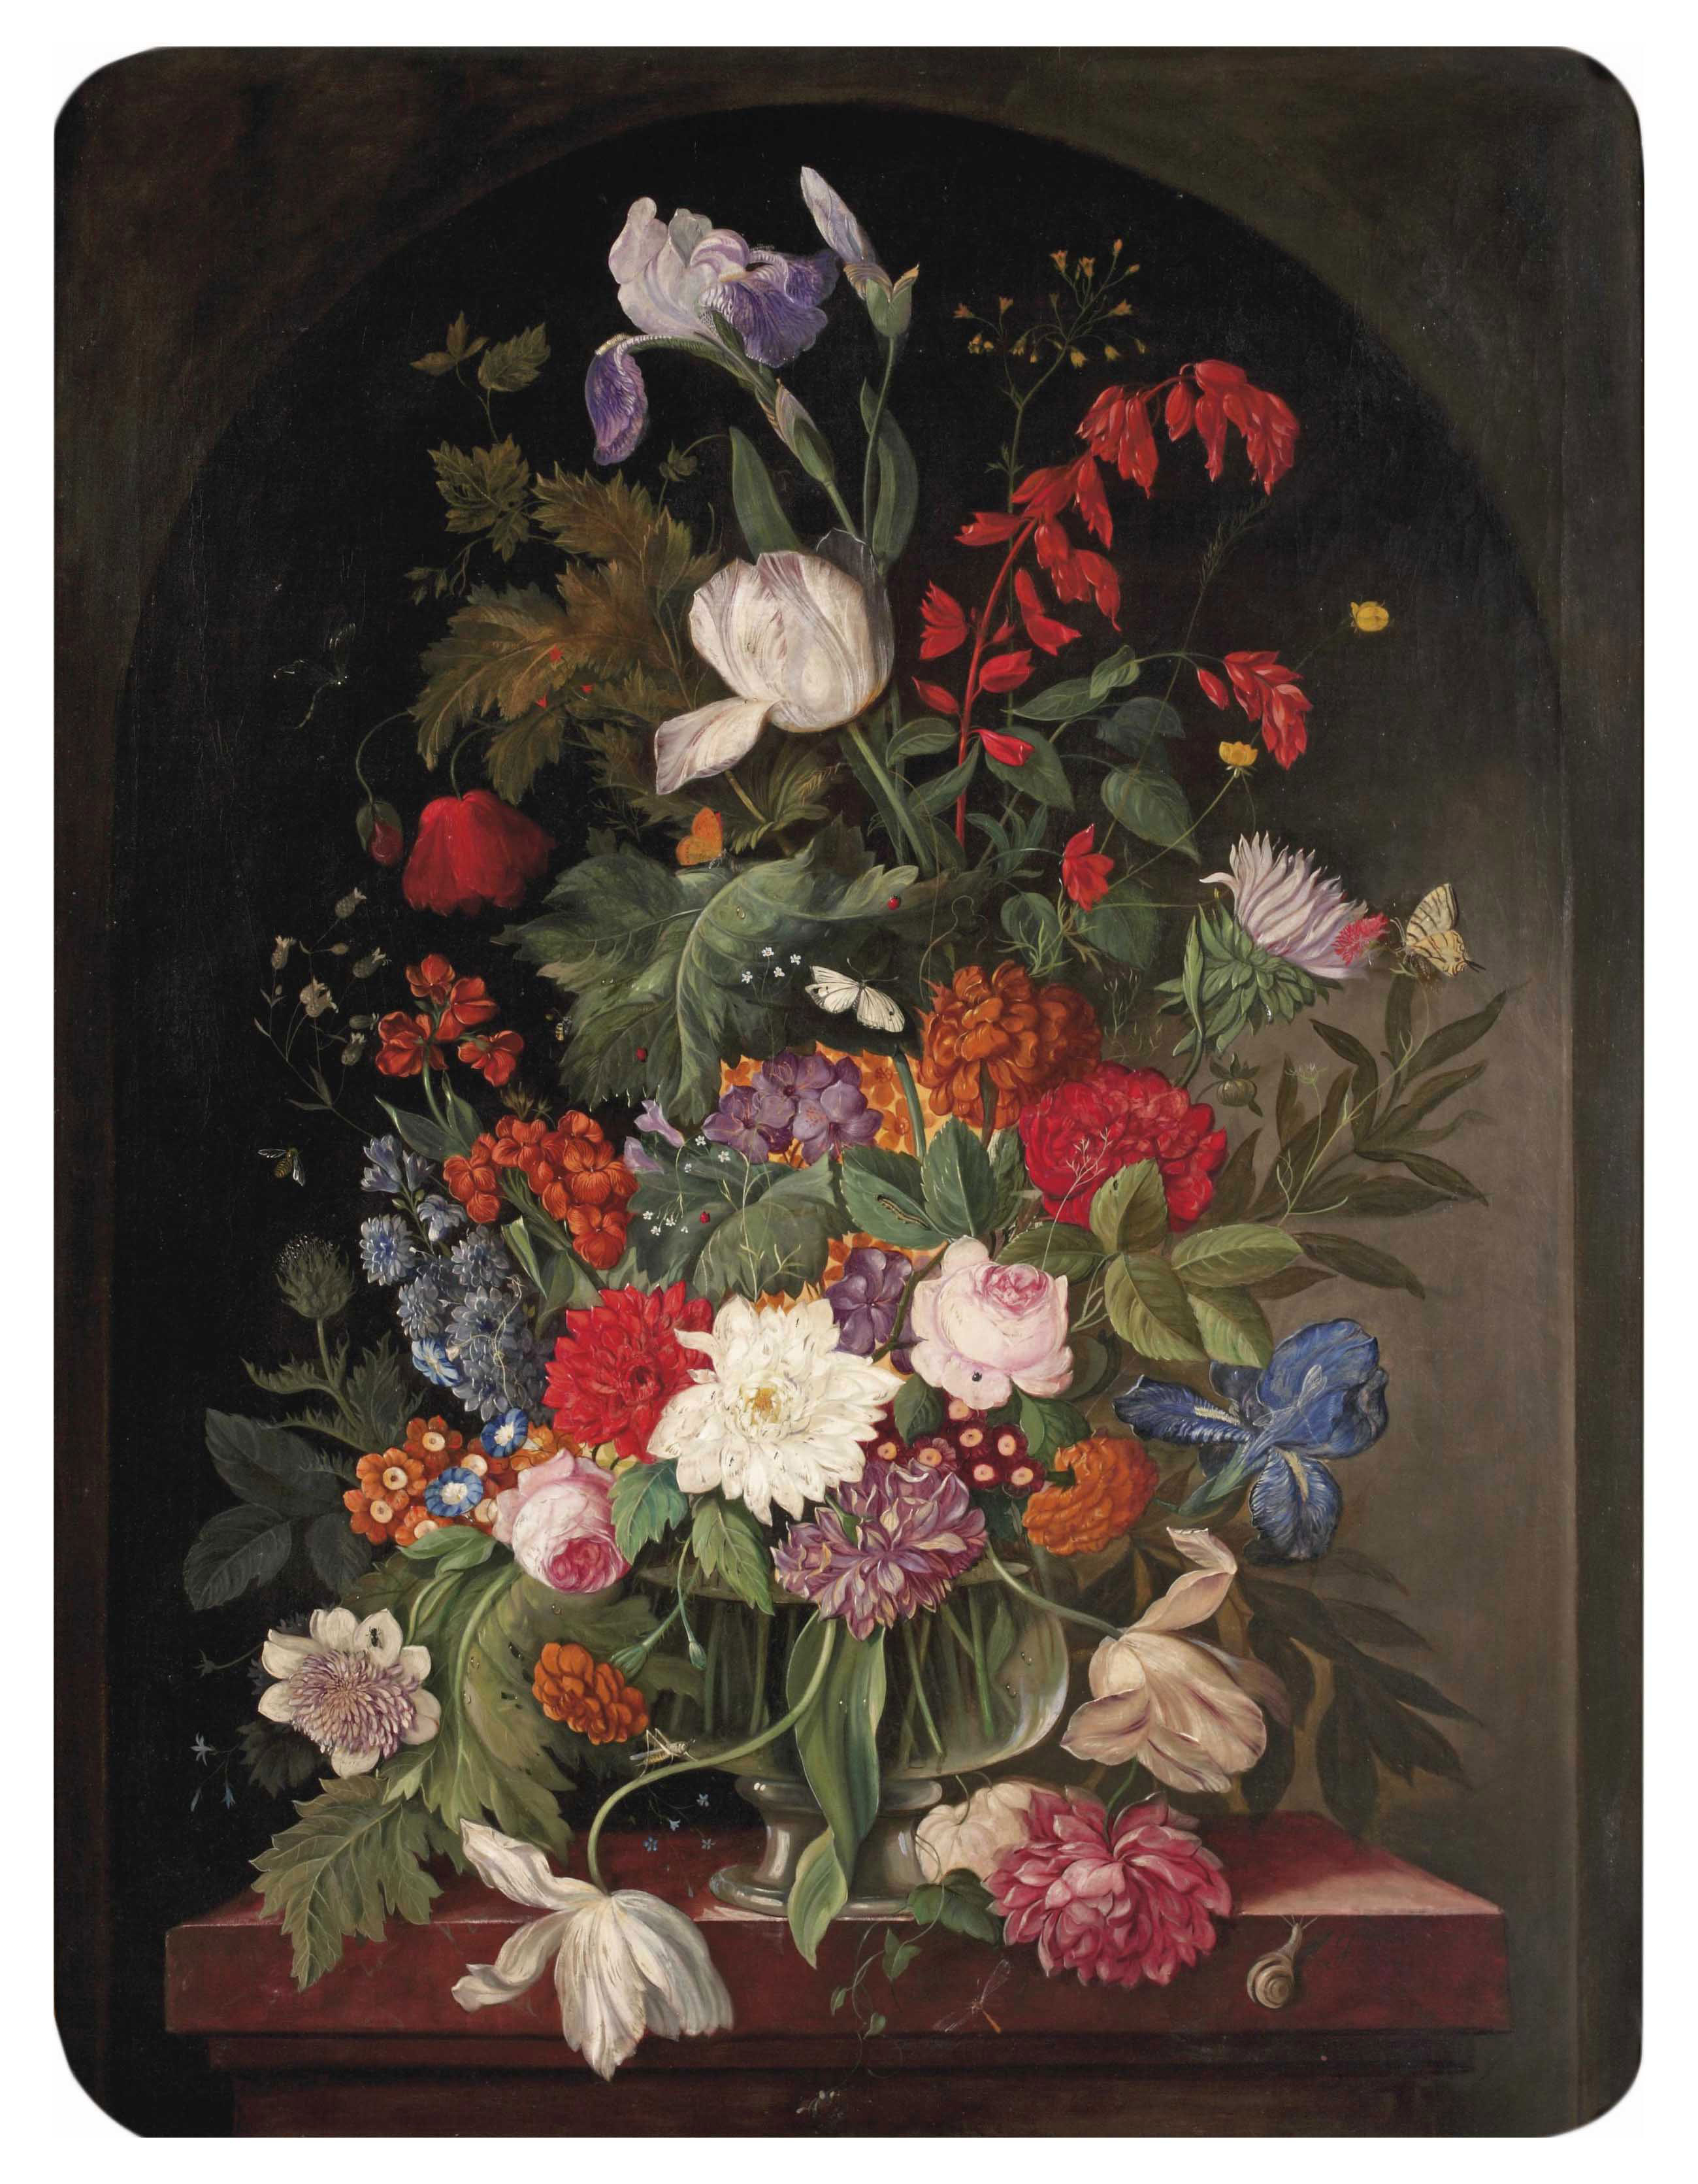 Pink roses, peonies, lilies and various other flowers in a glass vase on a marble edge in a stone ledge